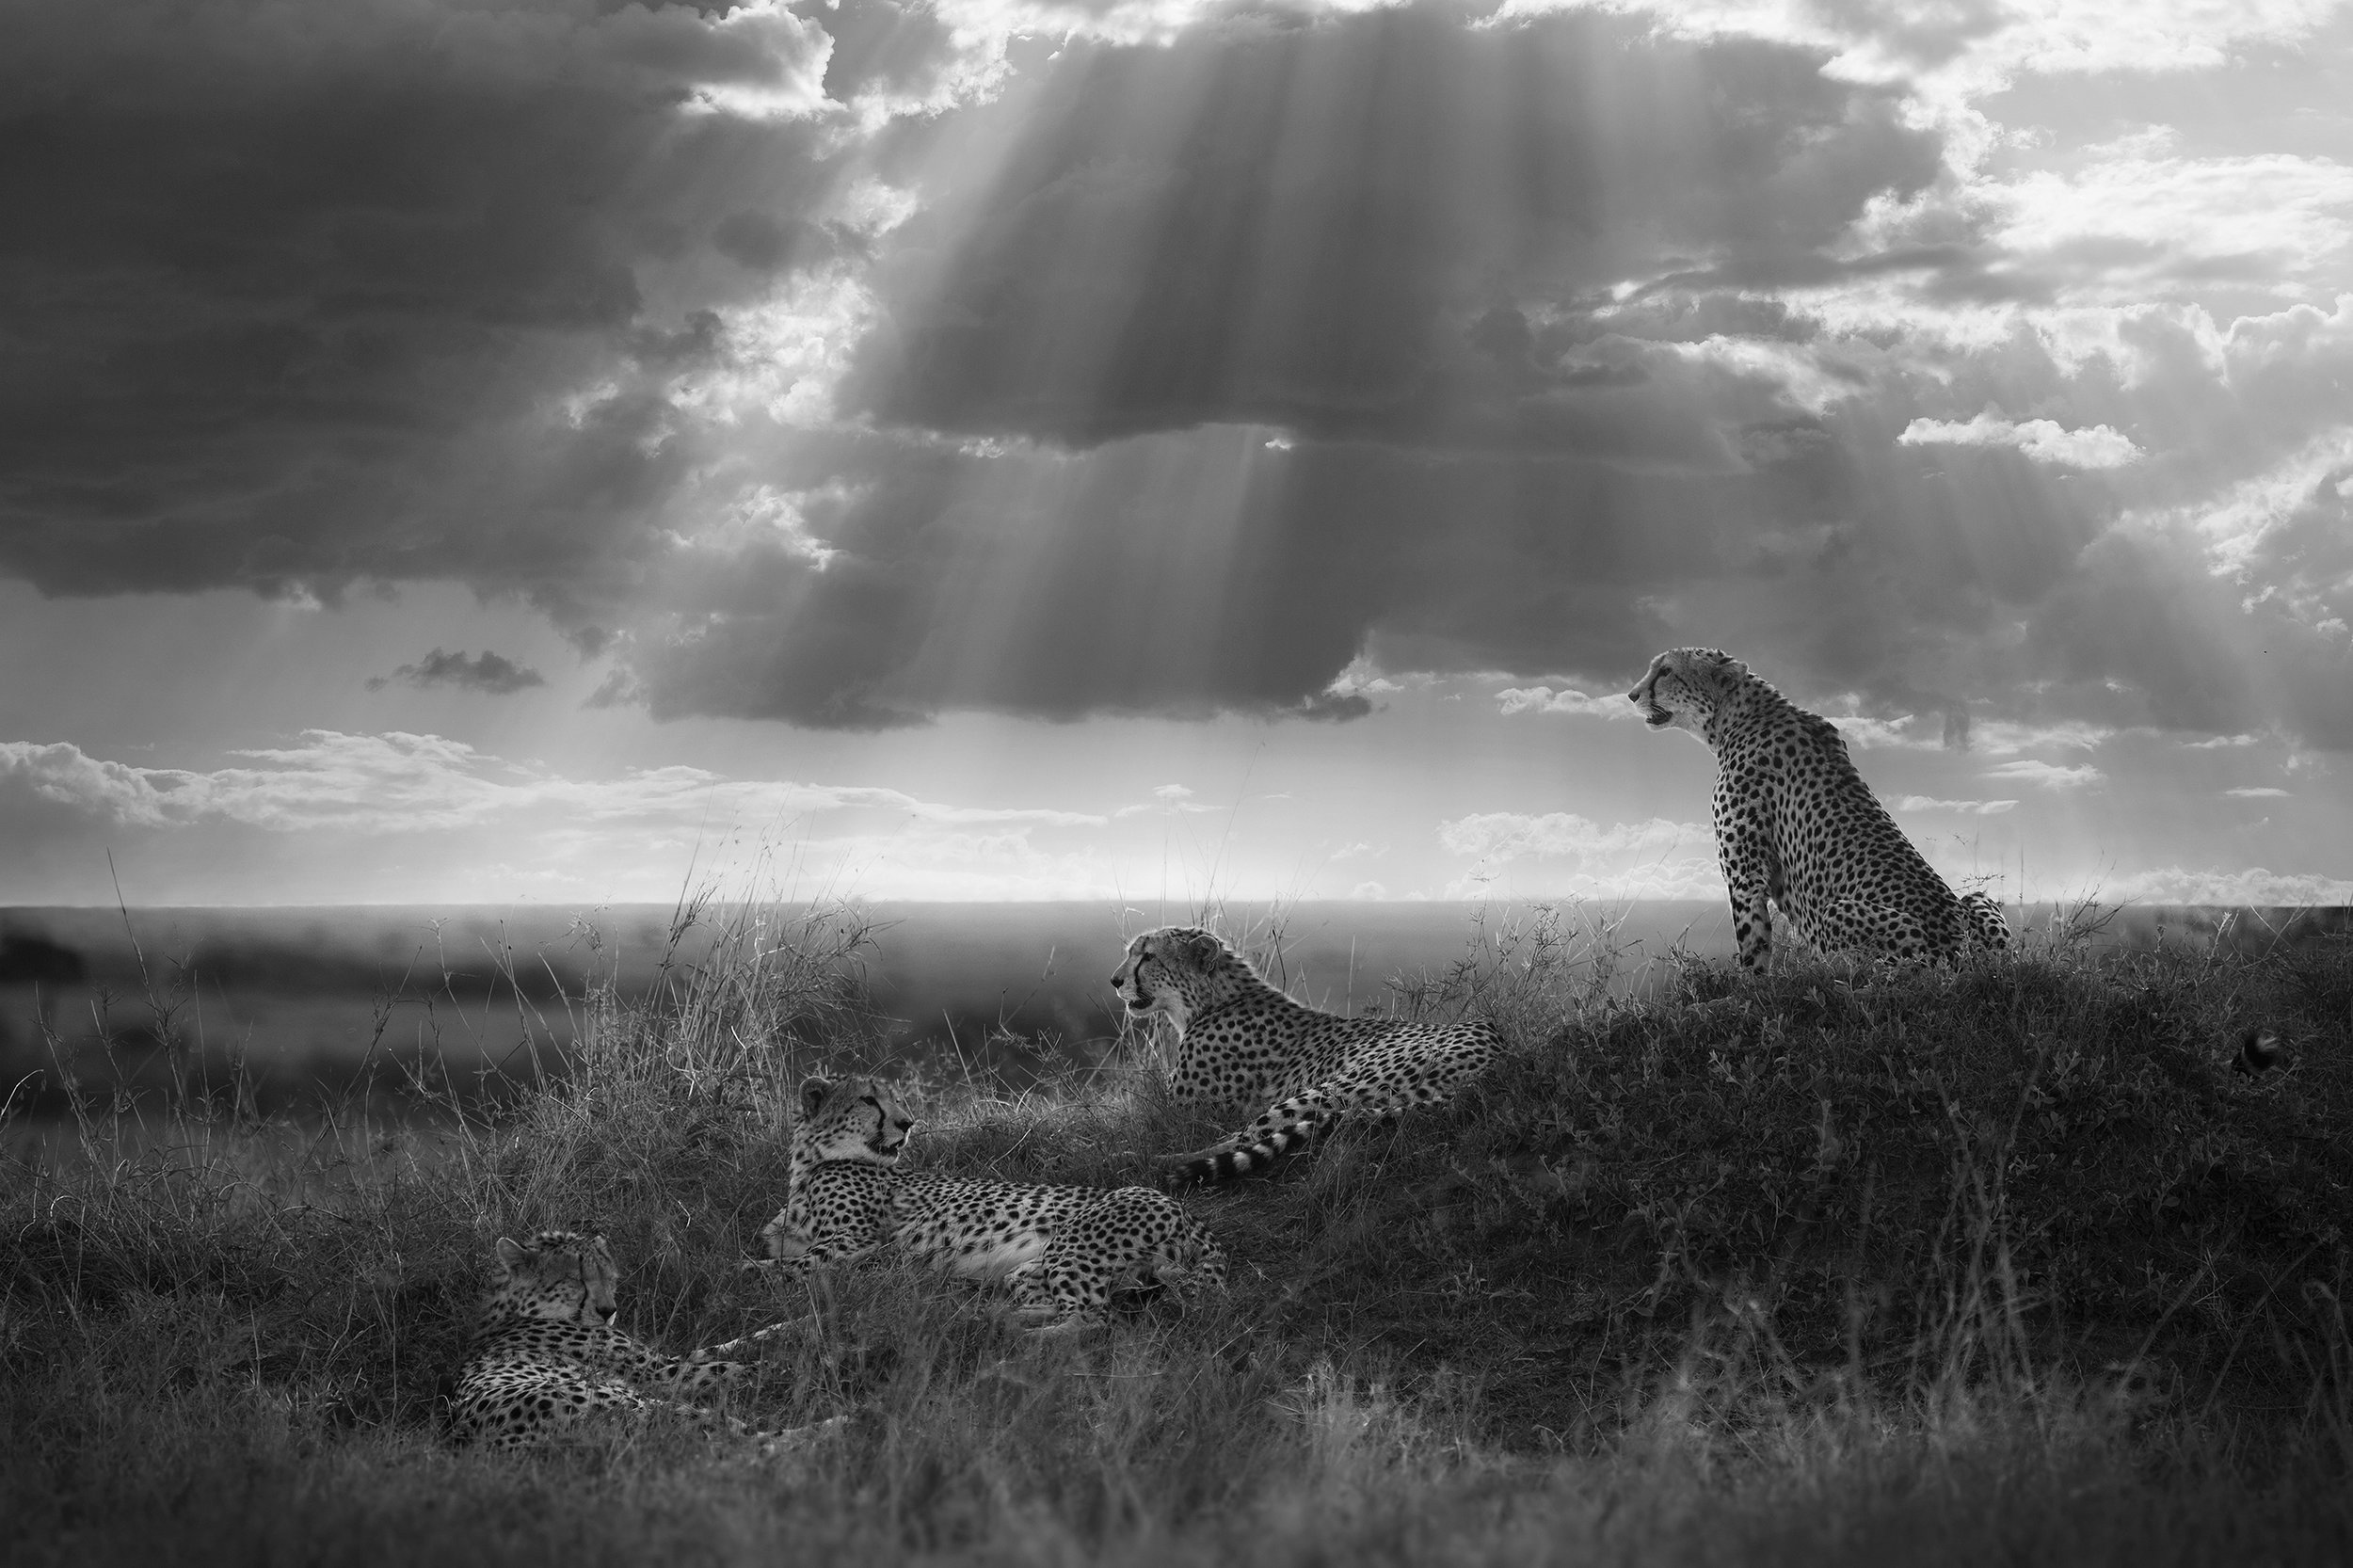 Blood Brothers, Masai Mara, Kenya, 2017  By Björn Persson  Available in 6 different sizes, Price from 10.000 SEK